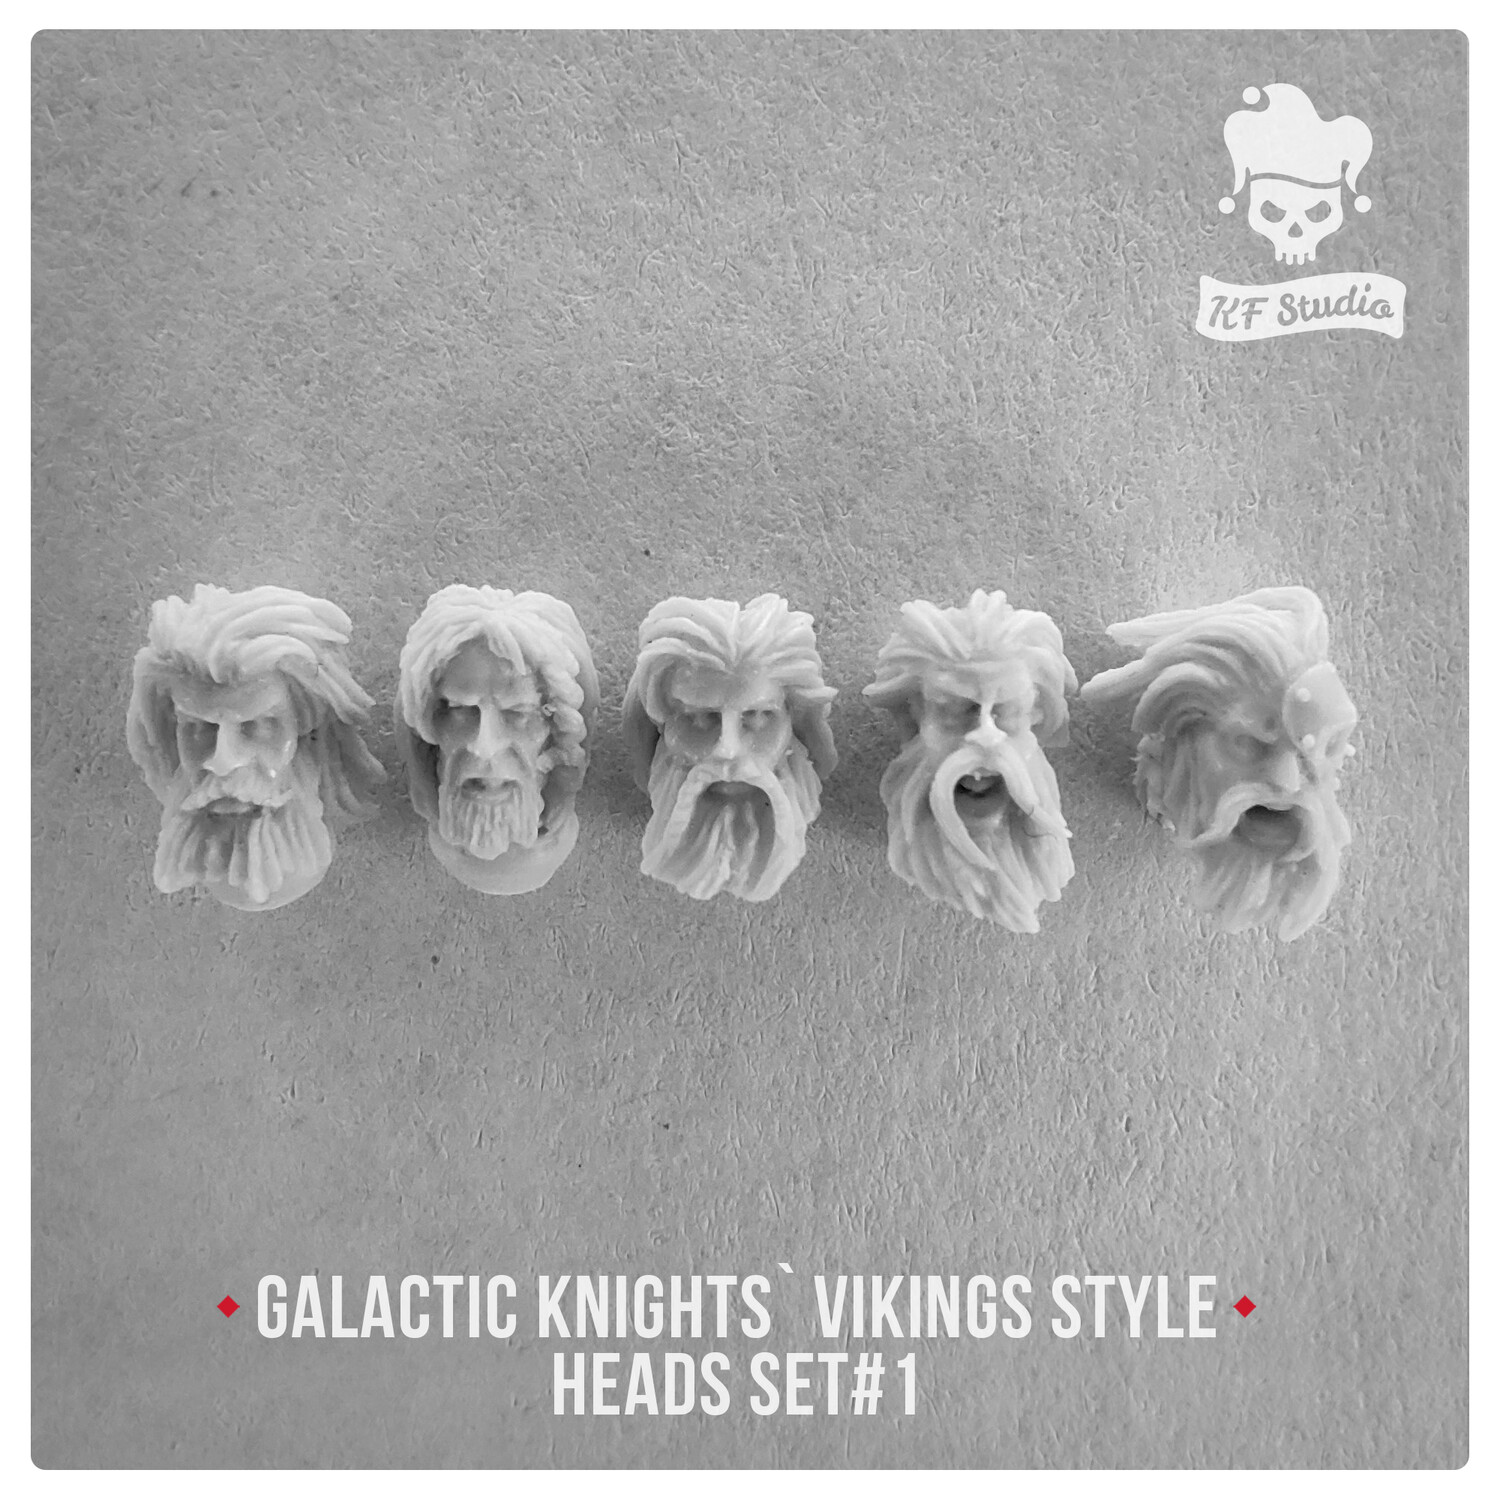 Galactic Knights Viking Style Heads Set#1 by KFStudio